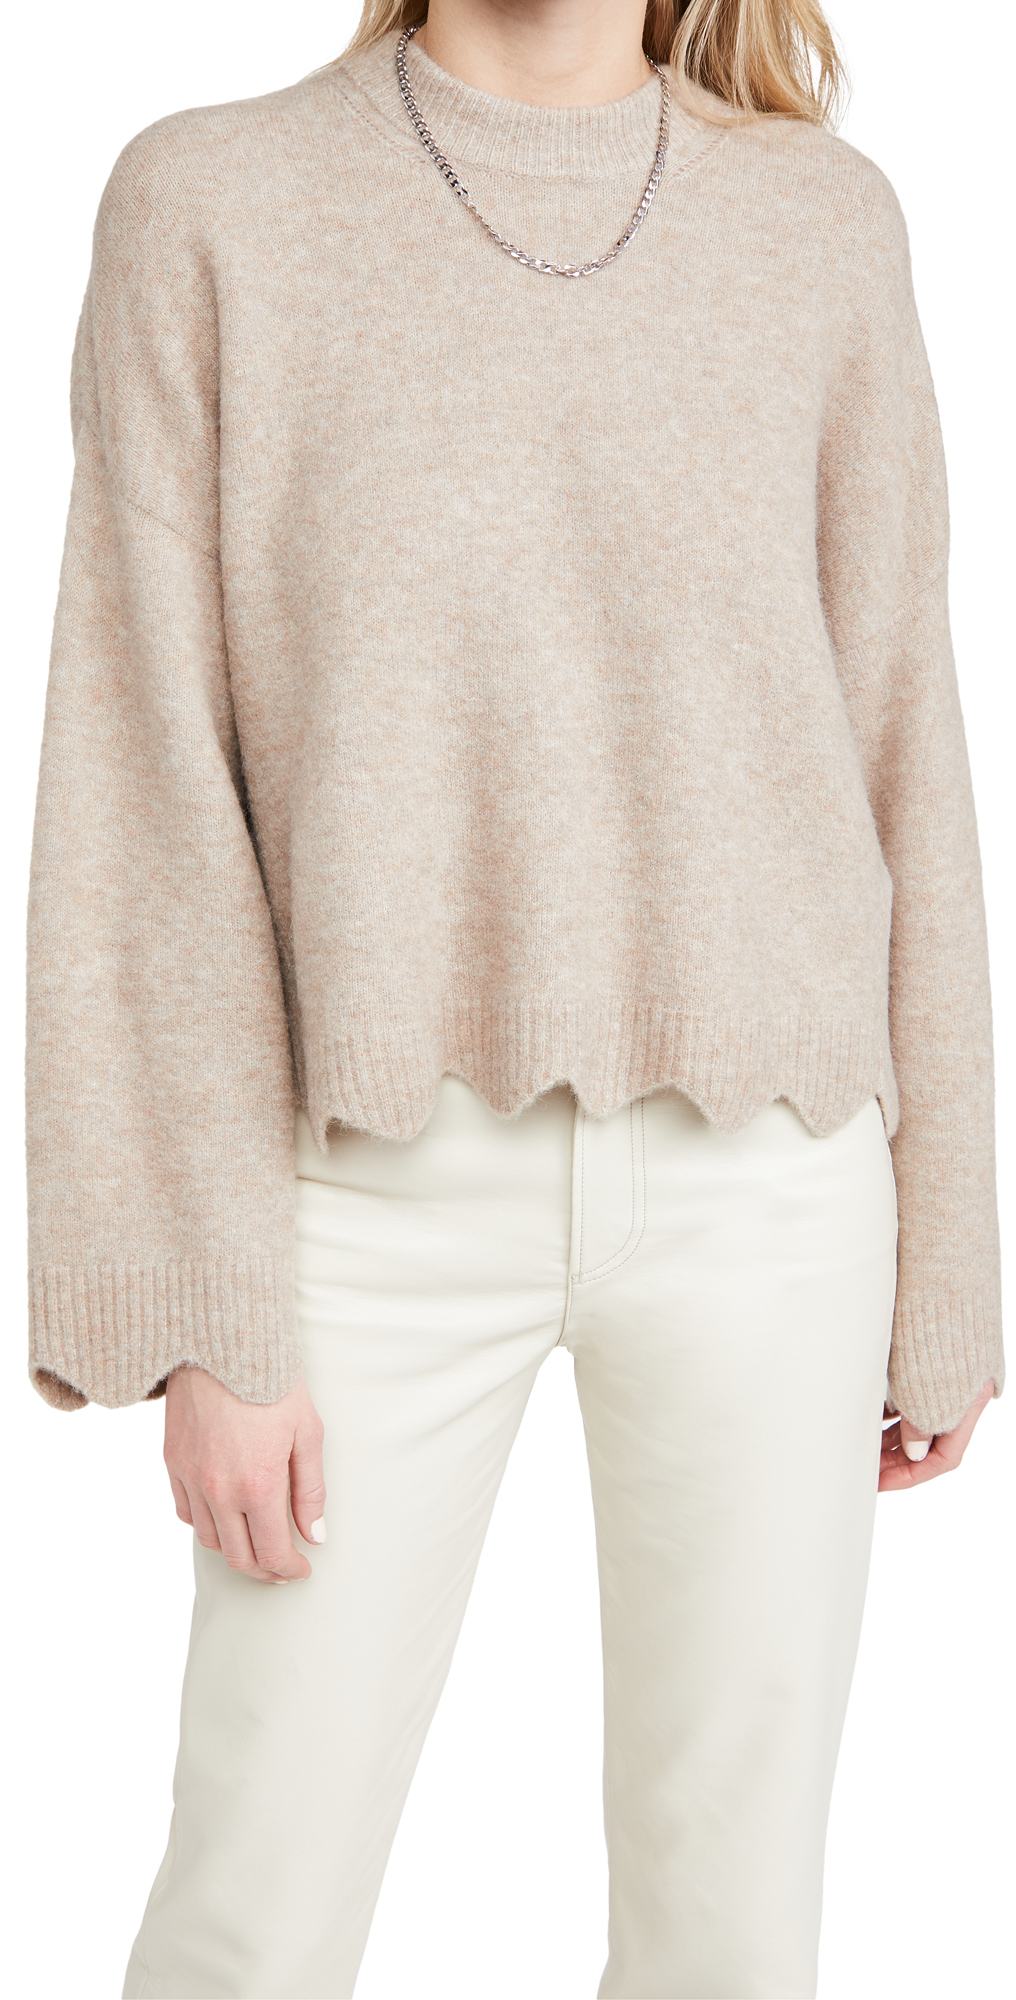 3.1 Phillip Lim Crew Neck Sweater with Scallops